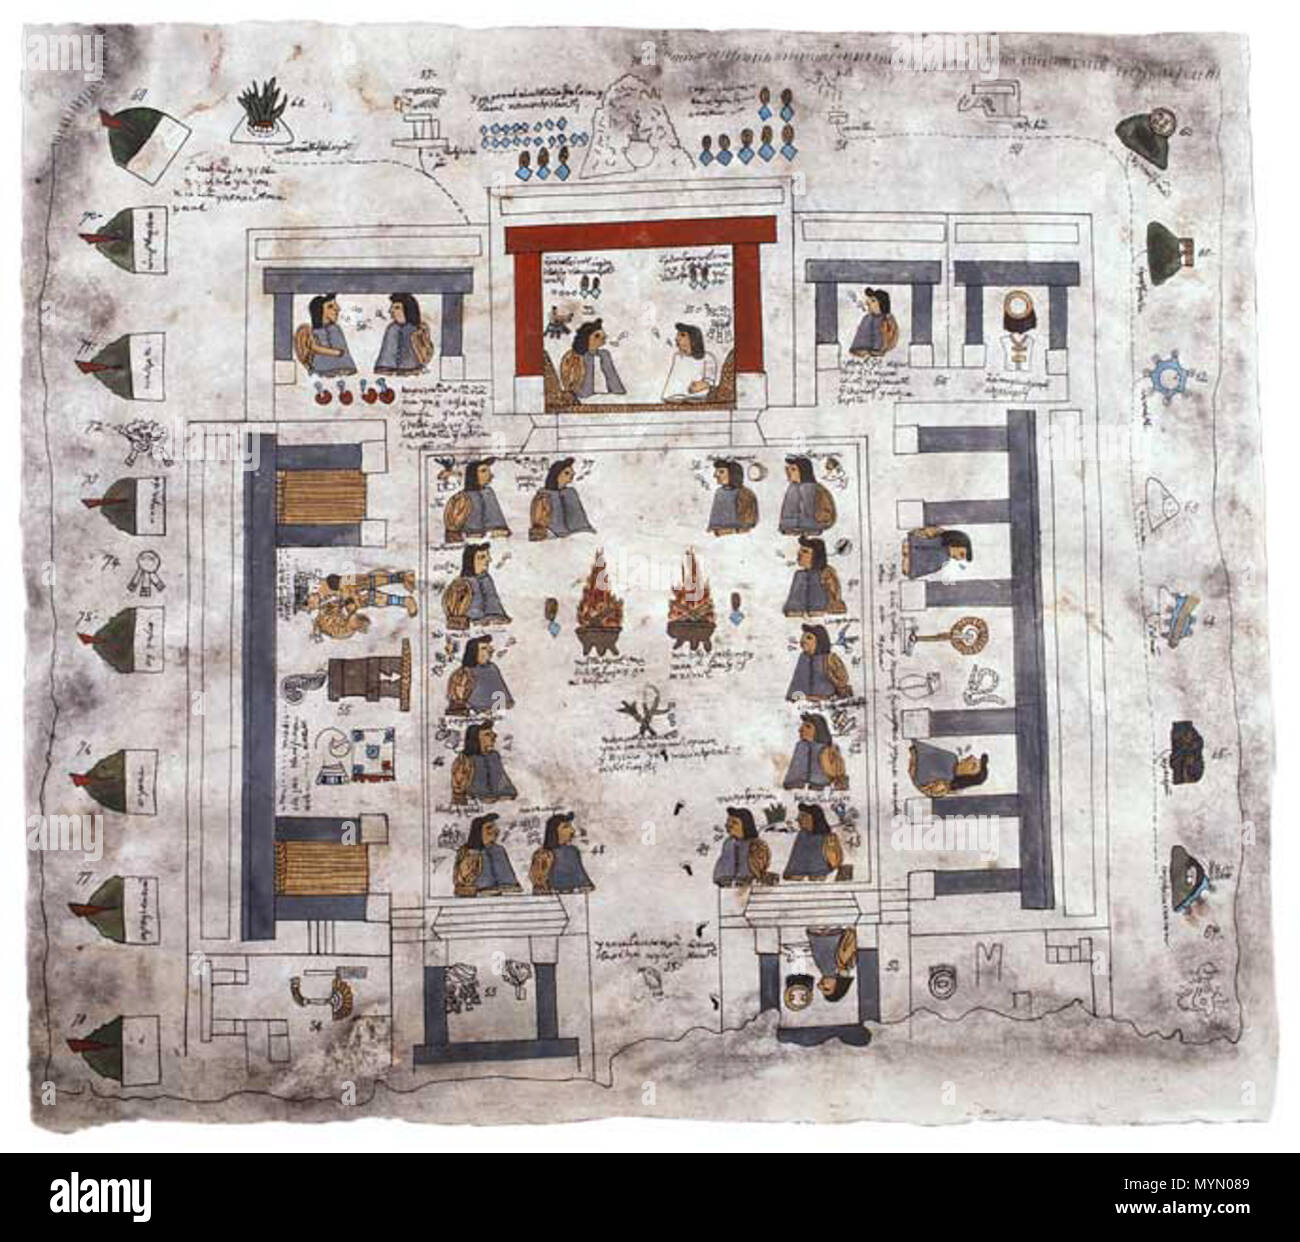 . English: Description of Nezahualcoyotl Palace in Codex Quinatzin . between 1500 and 1600. Unknown 385 Nezahualcoyotl Palace Codex Quinatzin - Stock Image